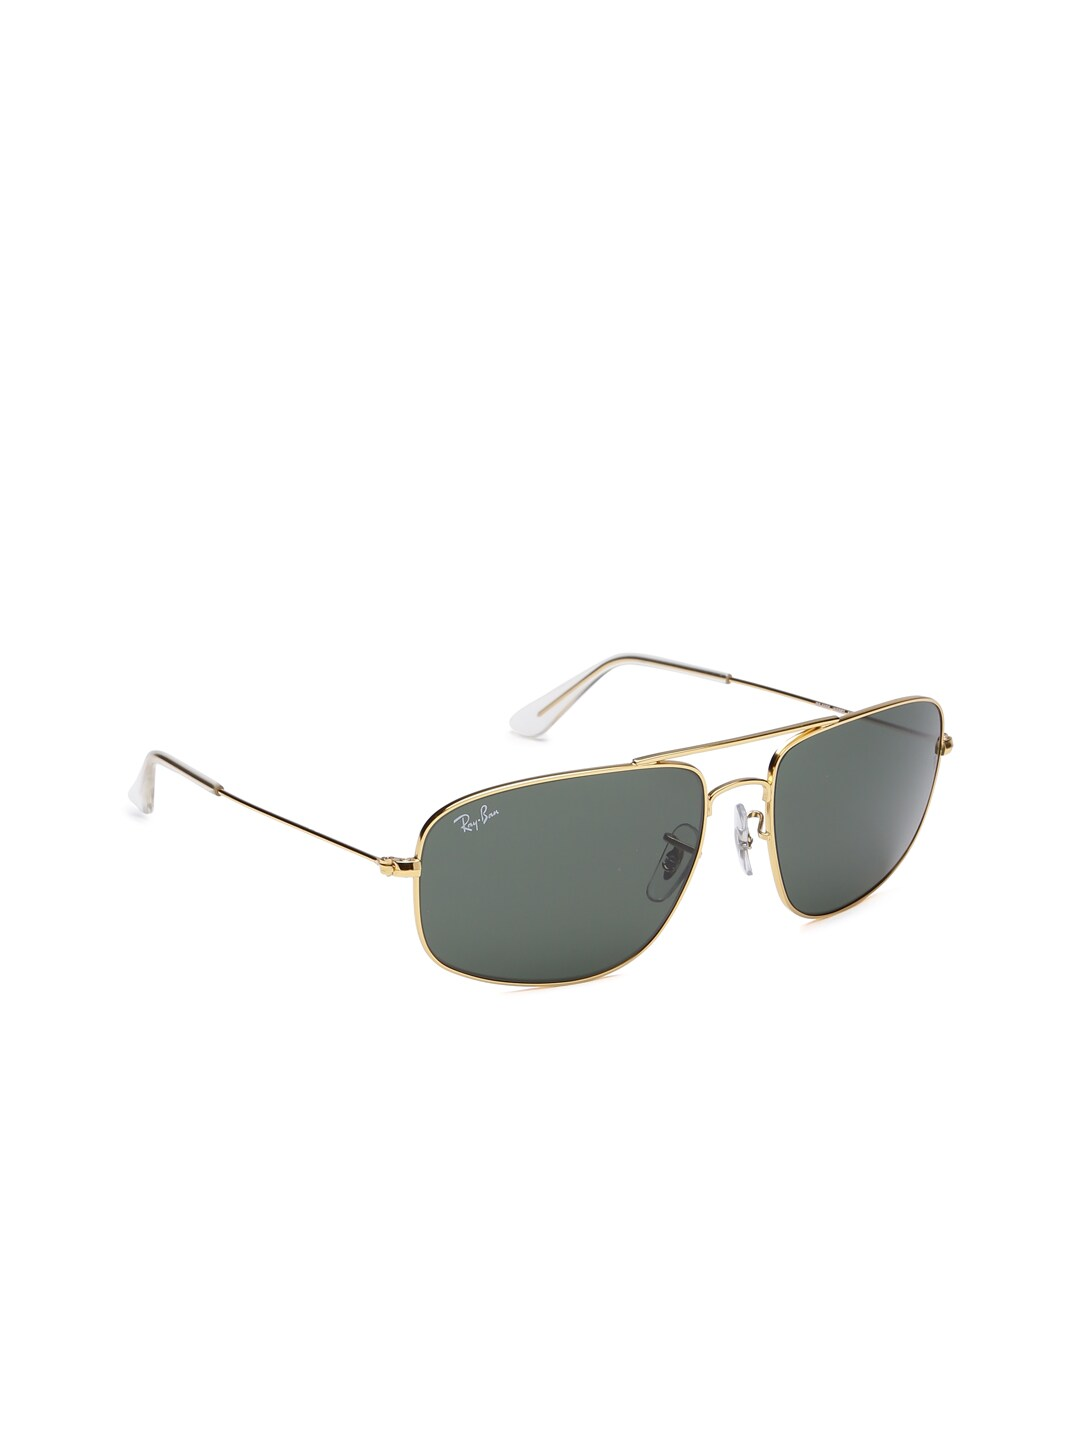 60c6d5a532 Ray Ban - Buy Ray Ban Sunglasses   Frames Online In India